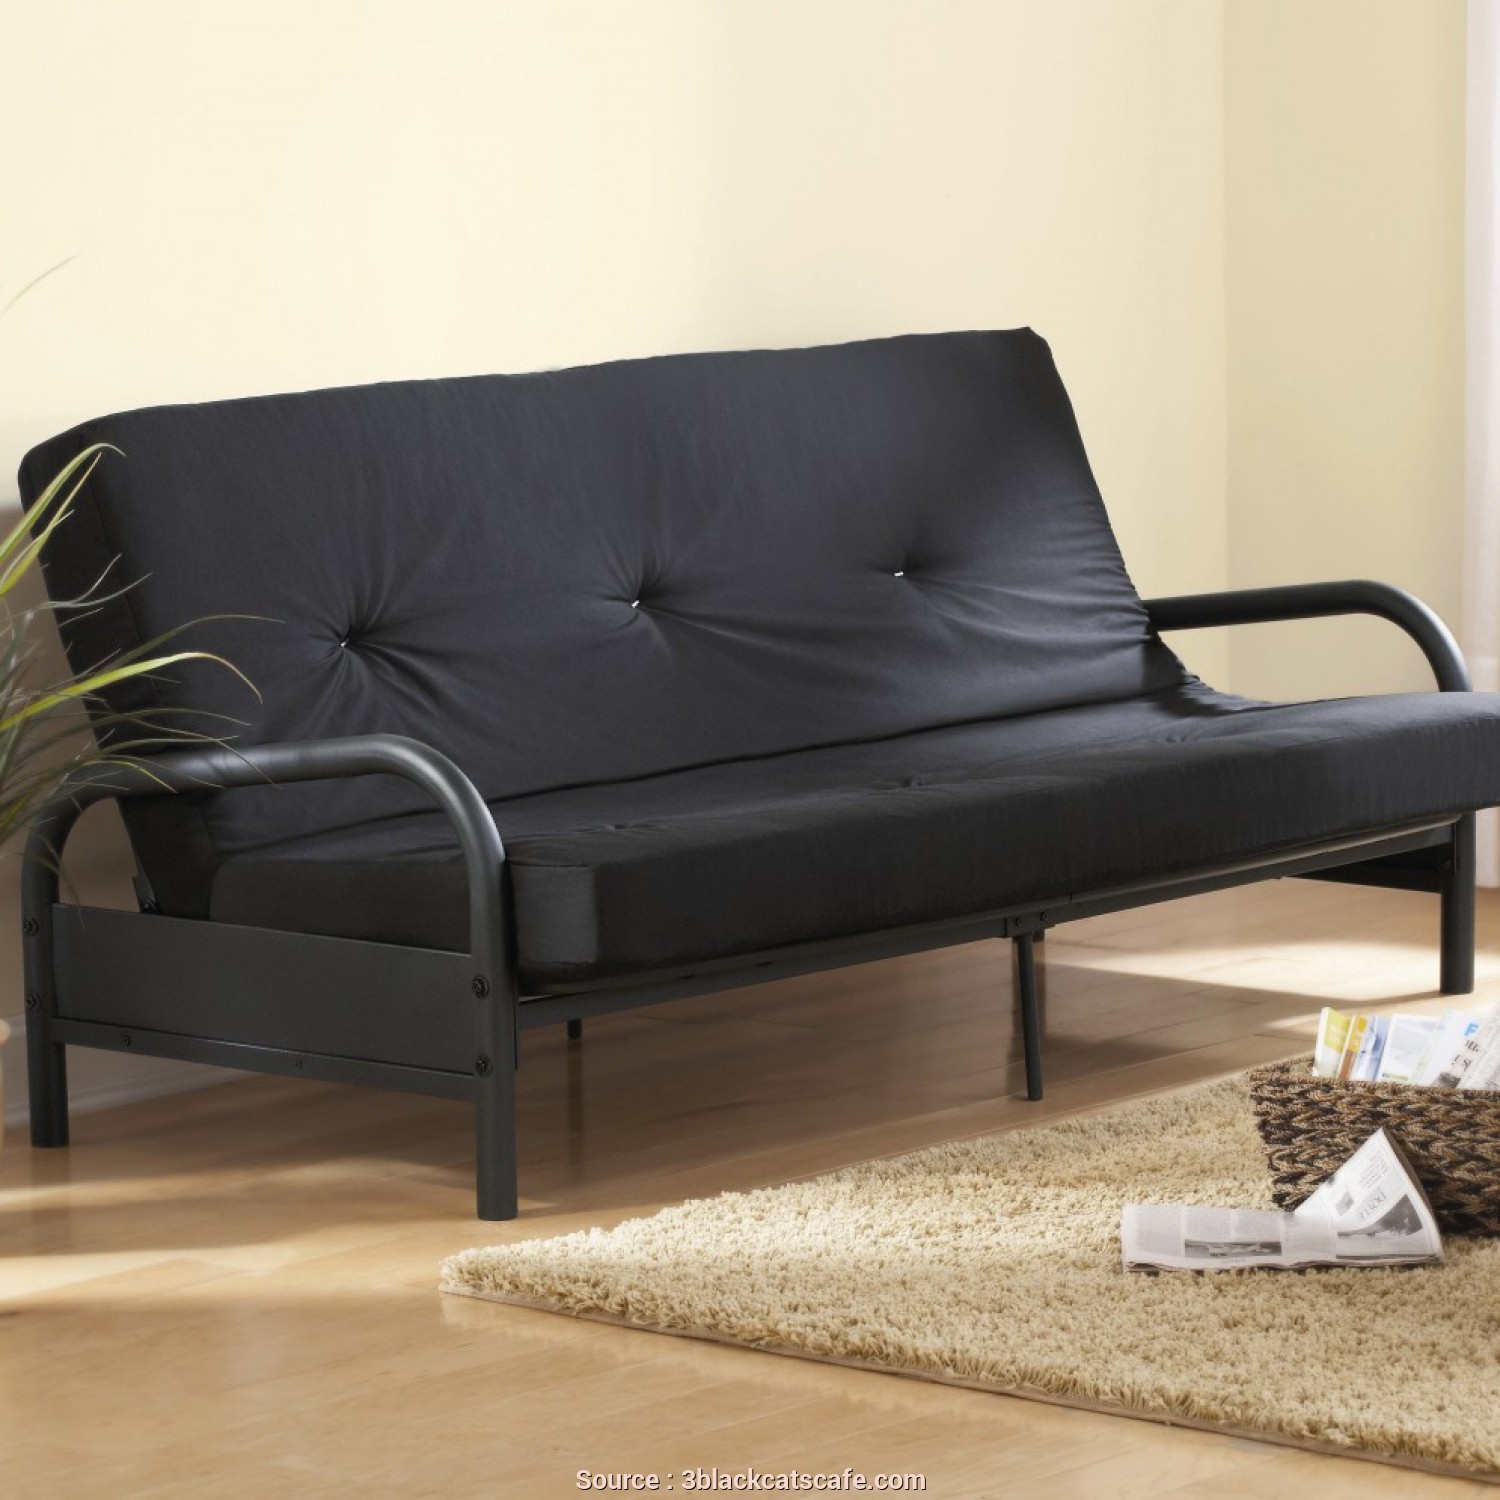 Twin Futon Cover Ikea, Amabile Decor: Wondrous Futon Slipcover, Comfy Home Furniture Ideas